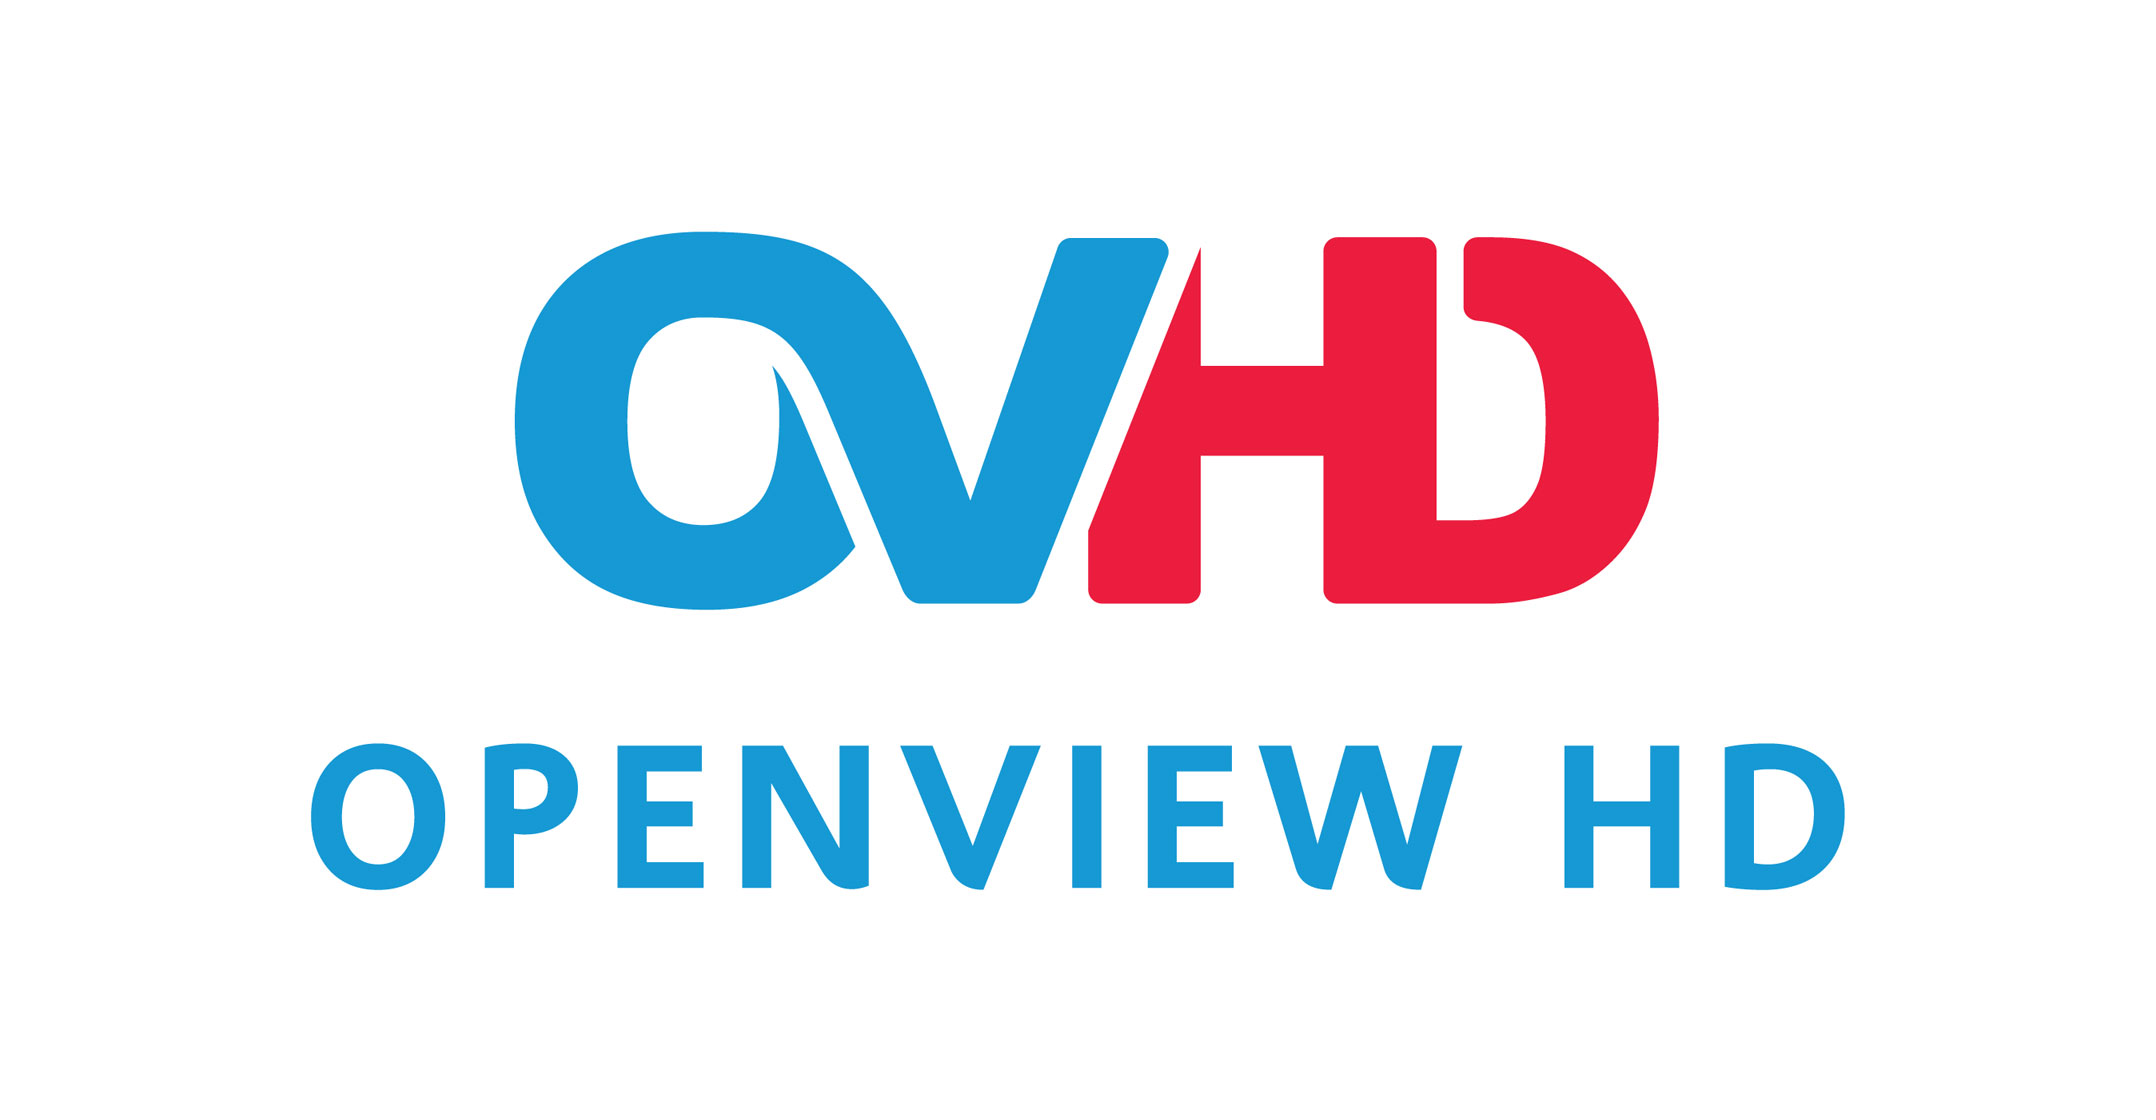 OpenView HD to get own news channel - TechCentral